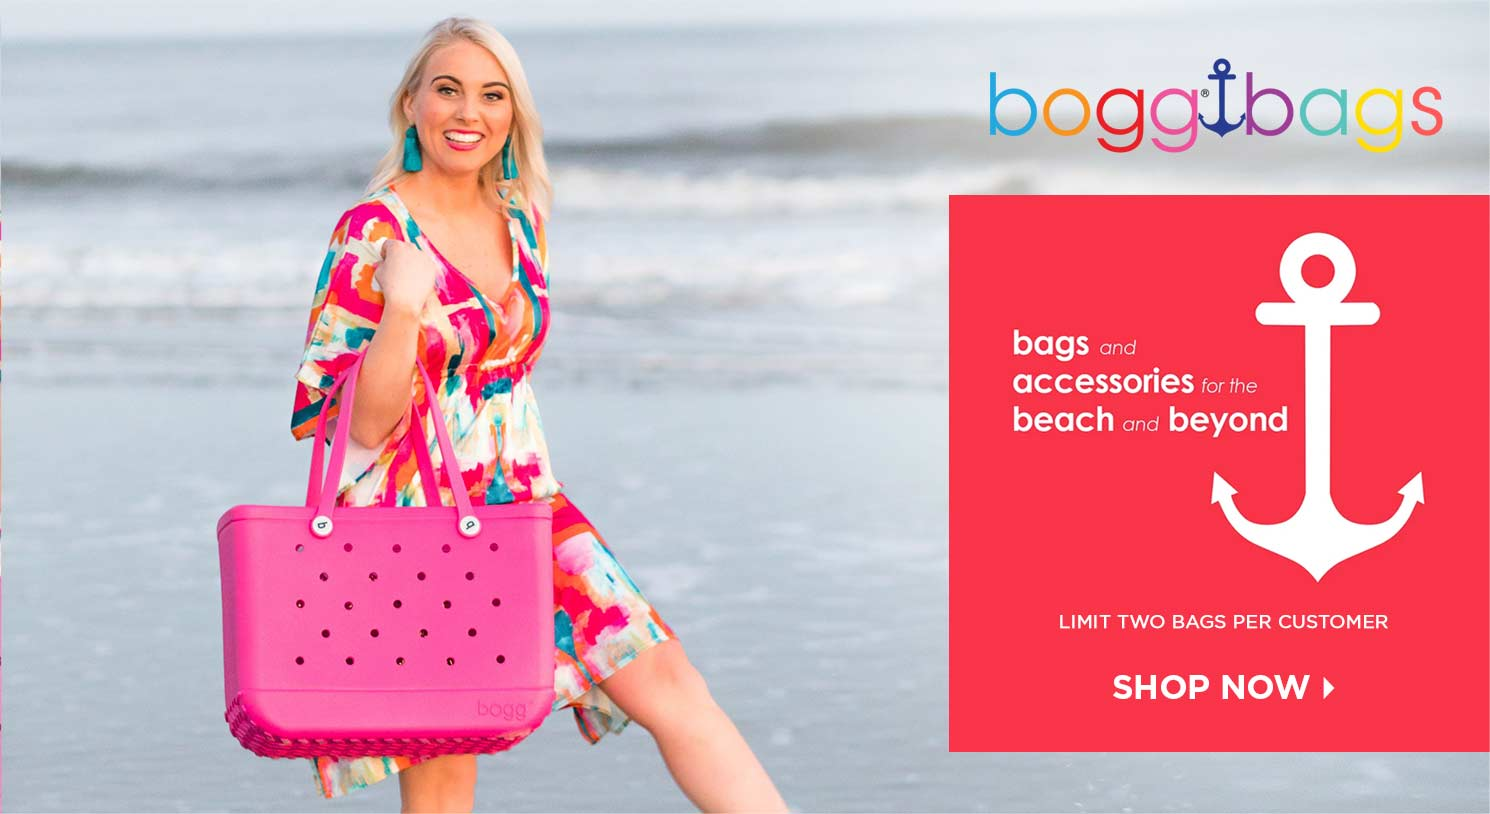 Bogg Bags: Bags and Accessories for the Beach and Beyond